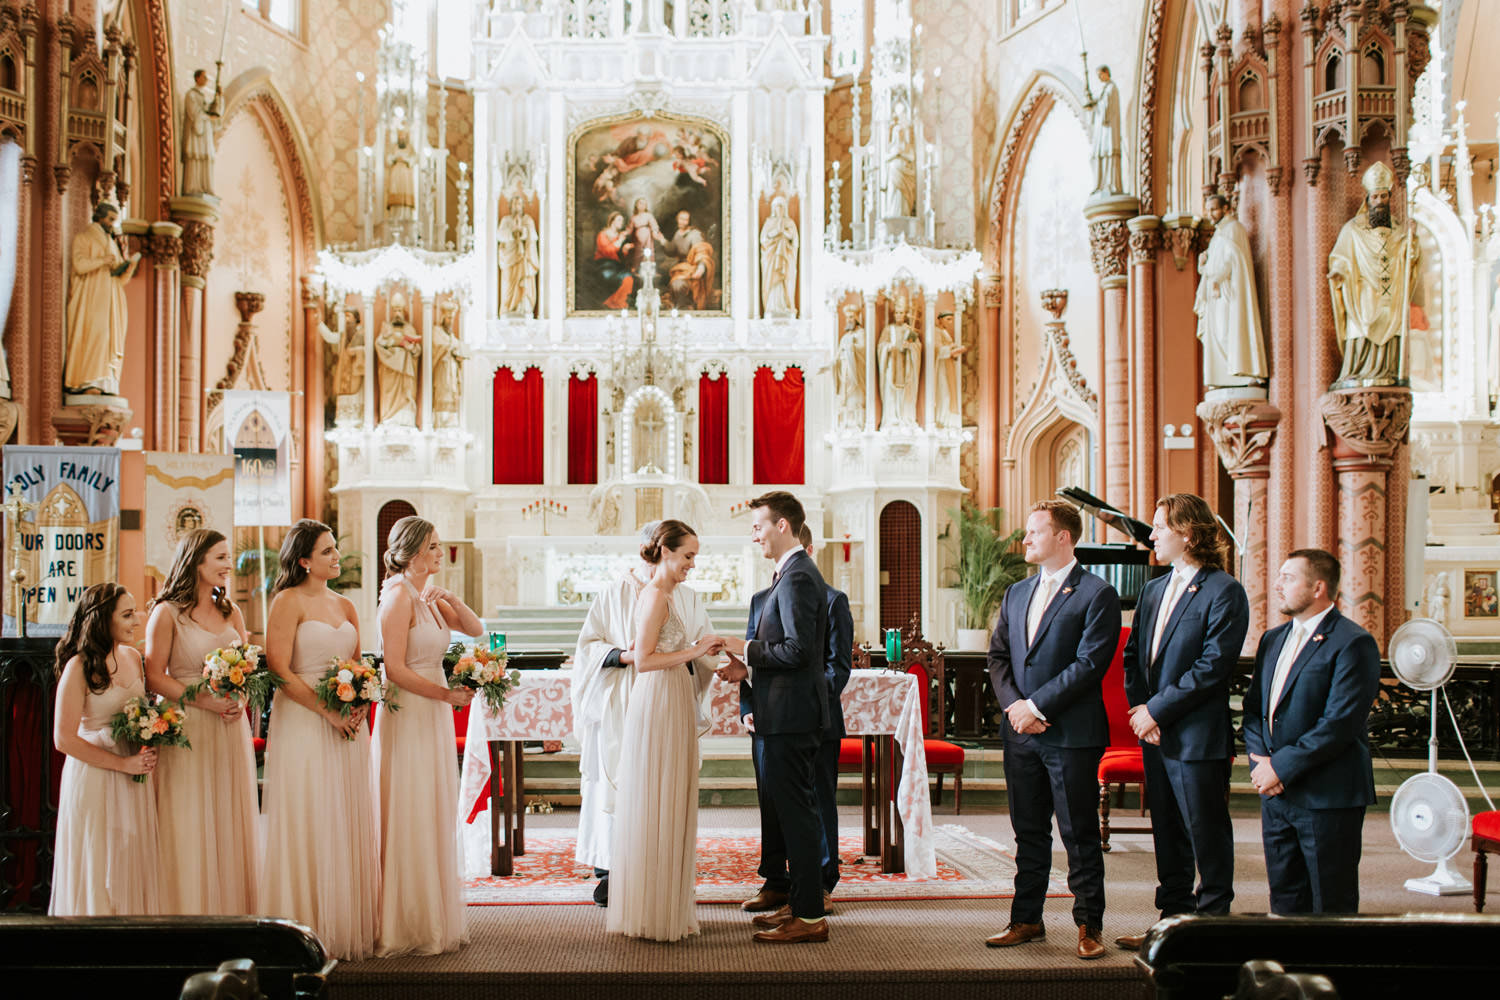 Bride and groom exchange vows during the wedding at Holy Family Catholic Church in Chicago